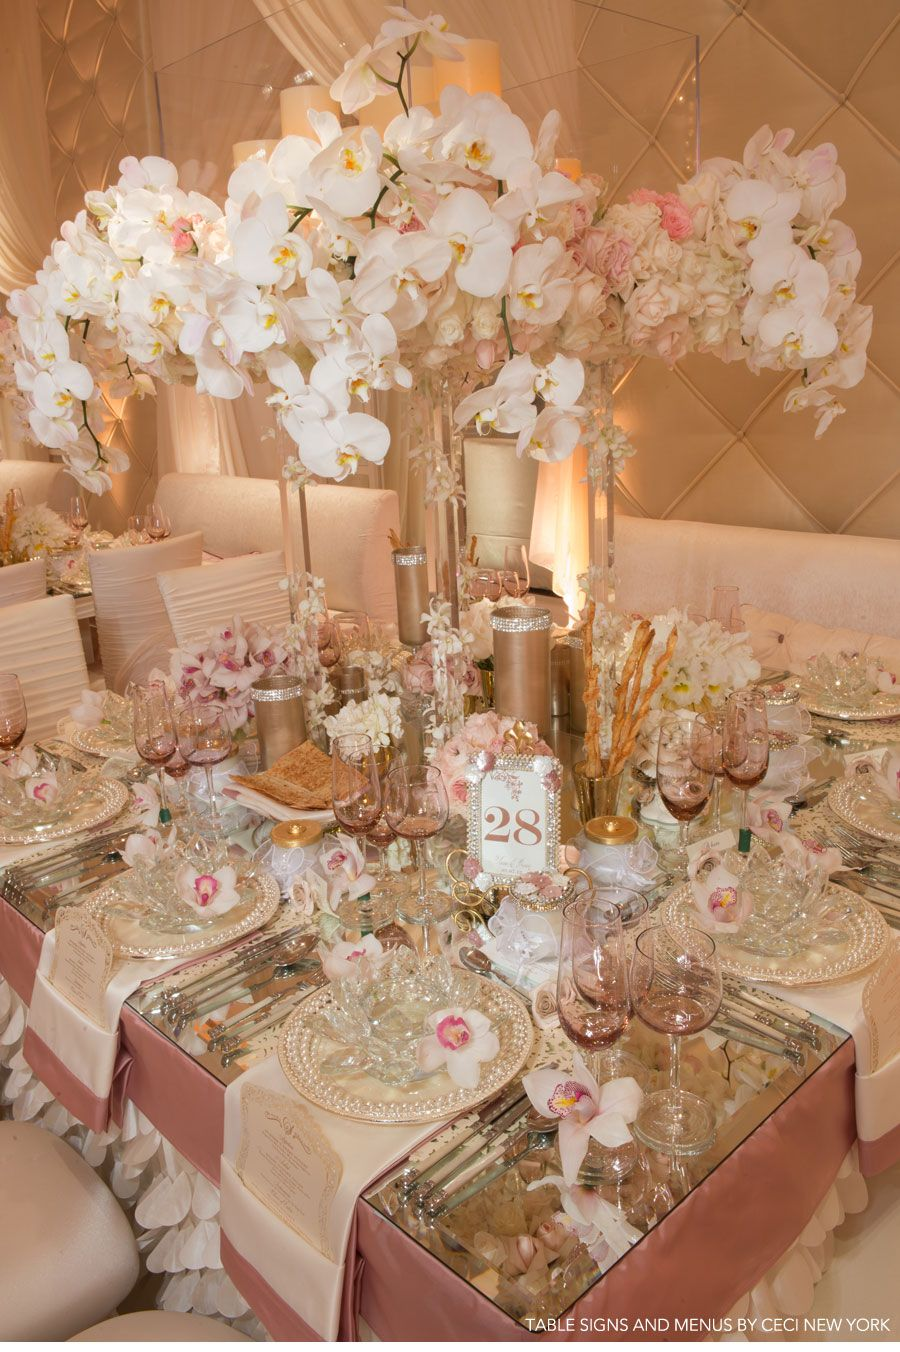 Coordinated by International Event Company Flowers by Marks